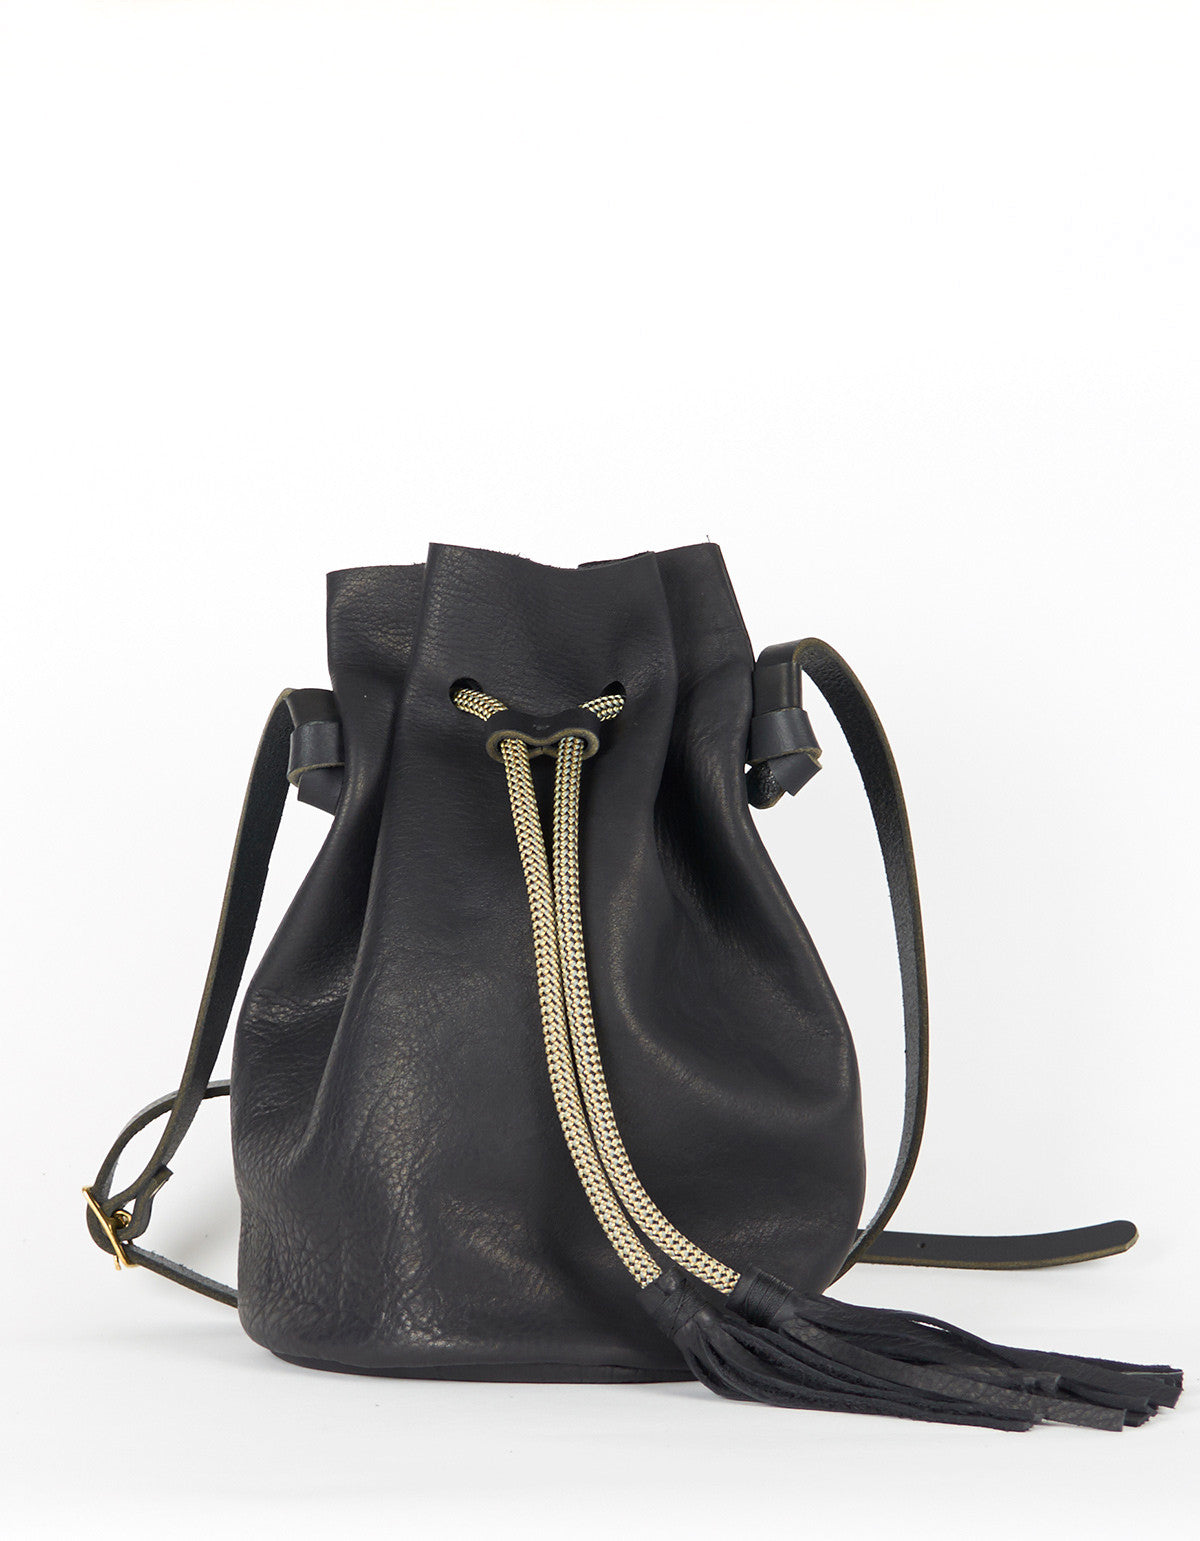 Eleven Thirty Christie Large Bucket Bag Black - Still Life - 1